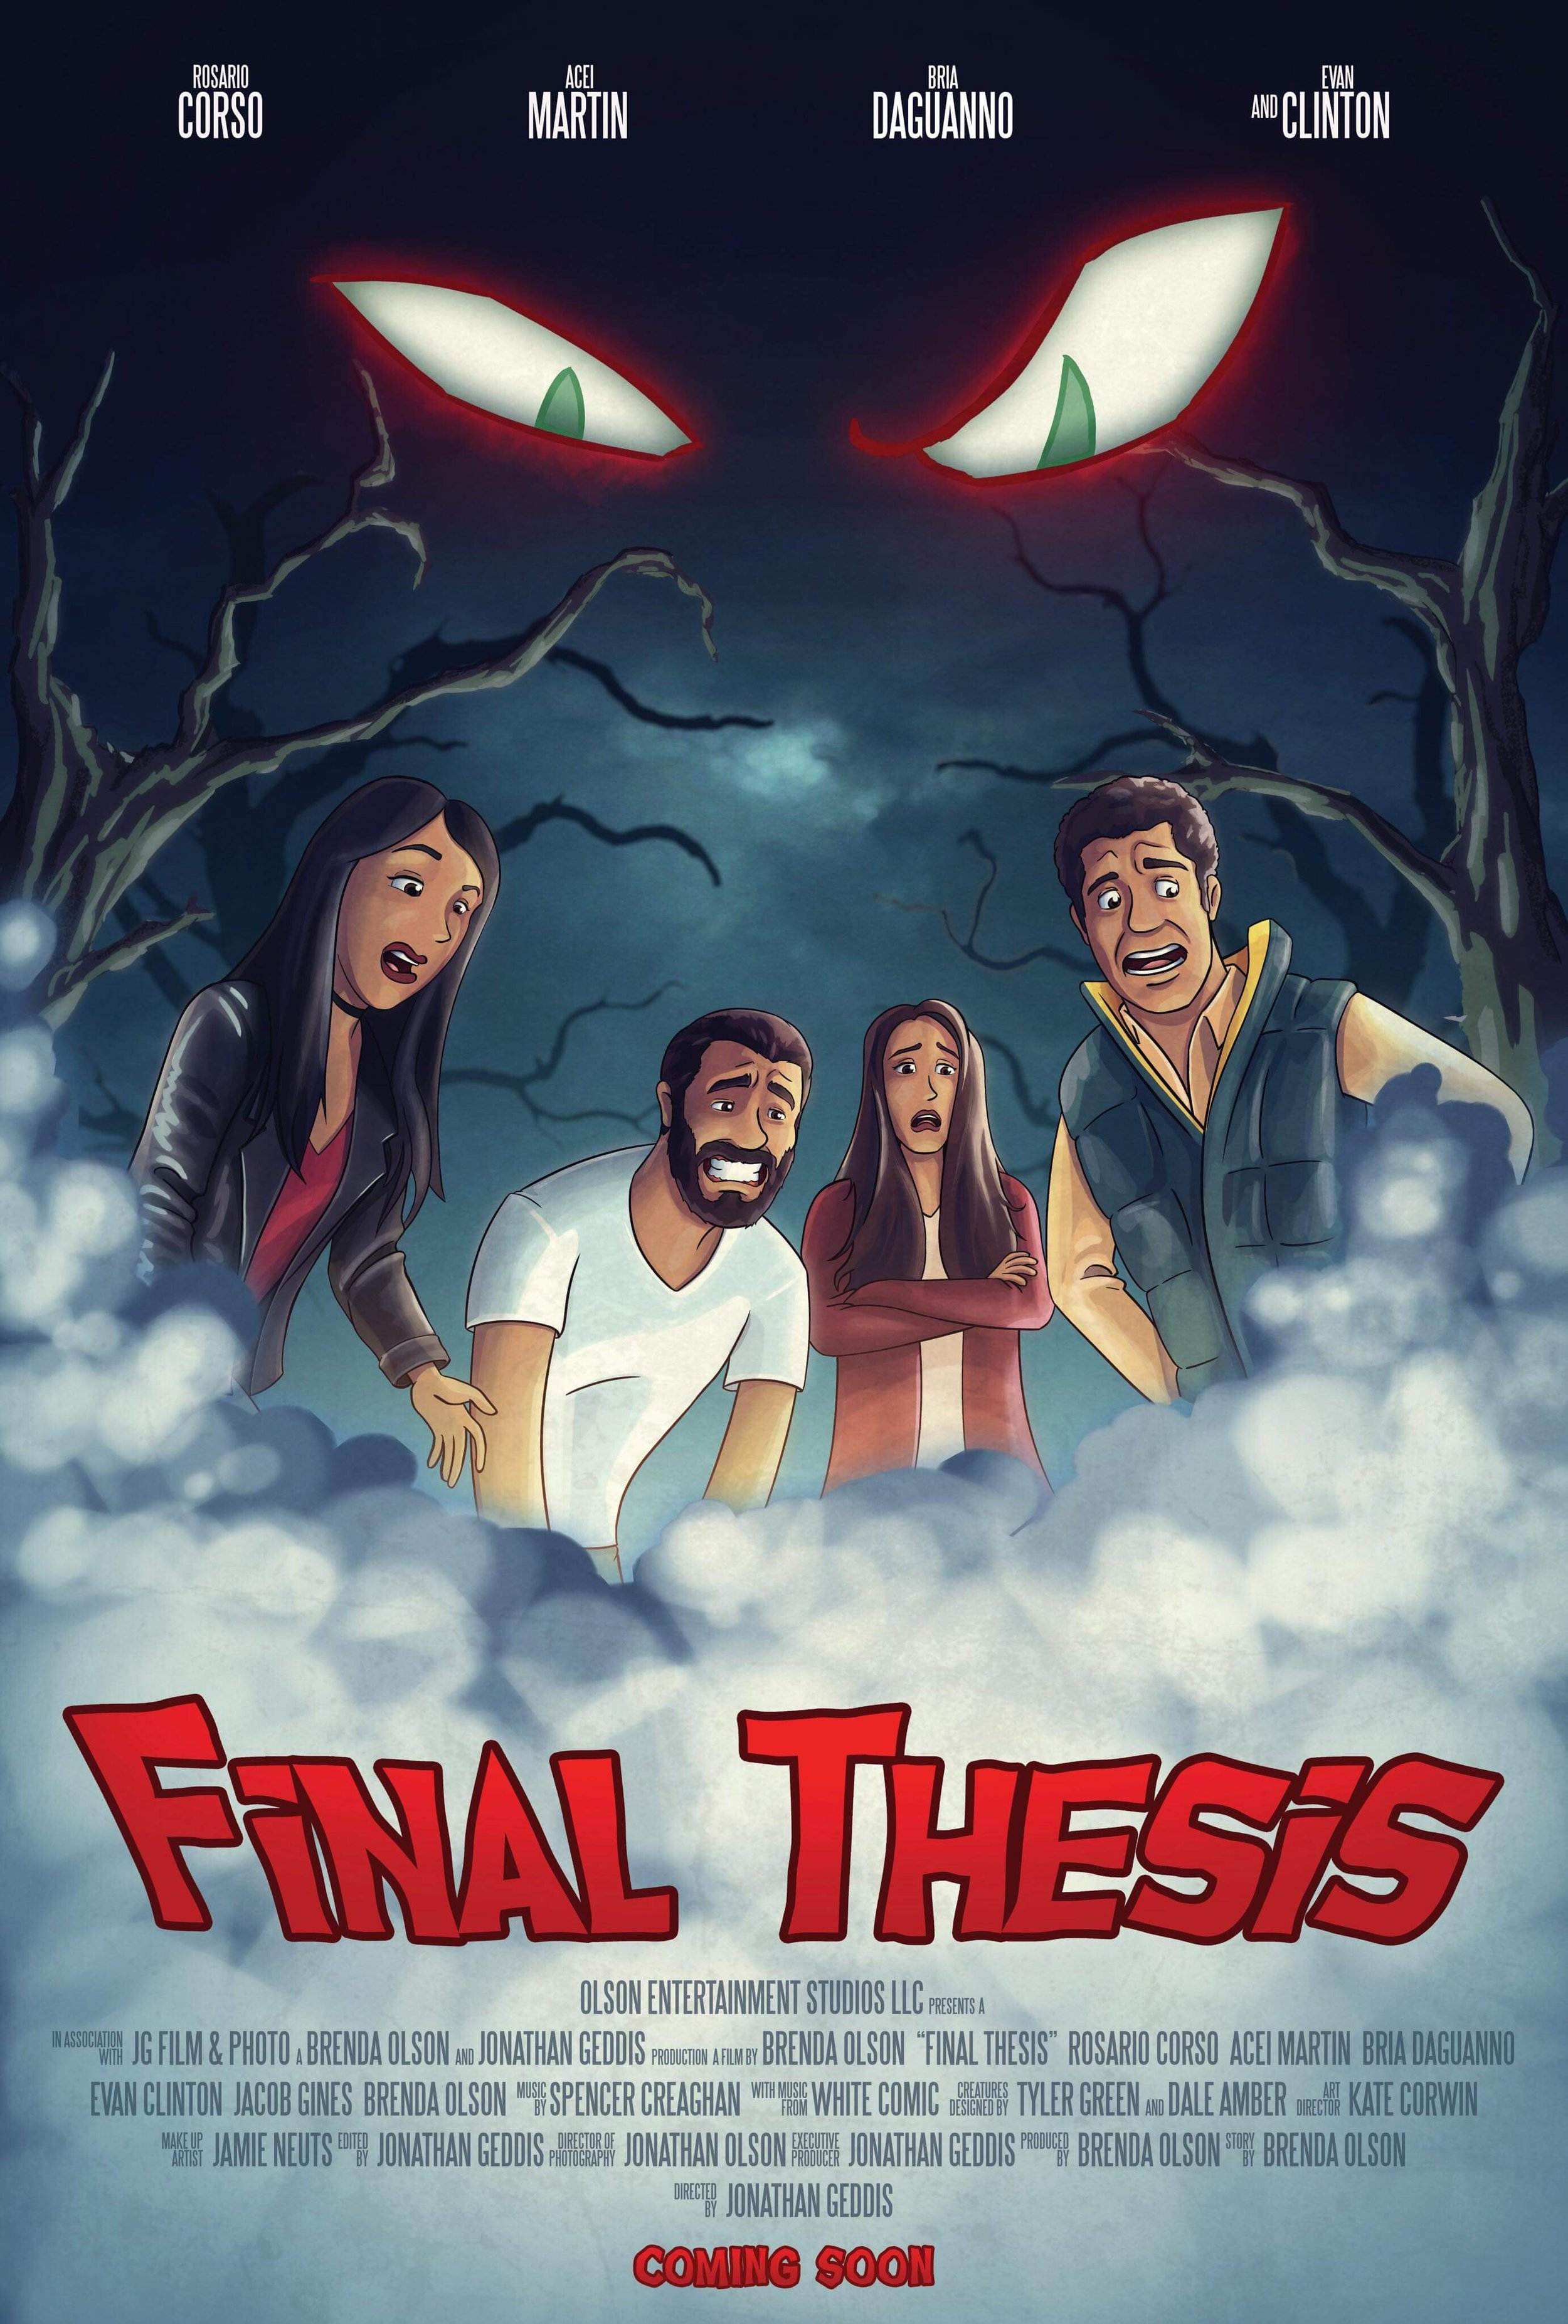 Final Thesis - Short/Comedy/HorrorCreature Design